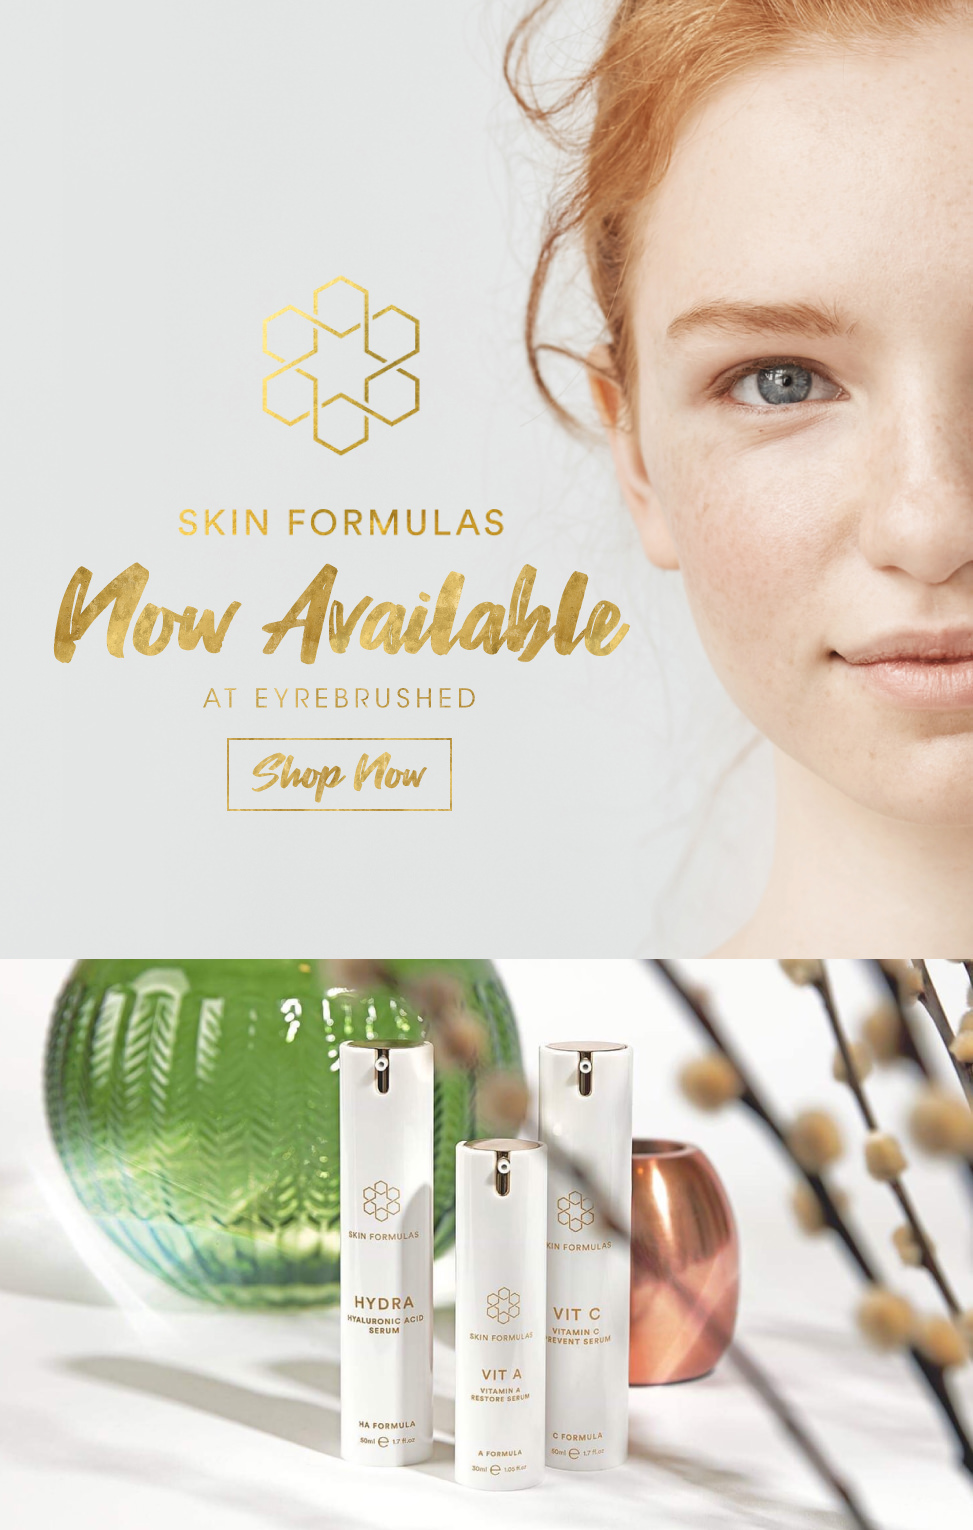 Skin Formulas Now Available at Eyrebrushed Kilkenny